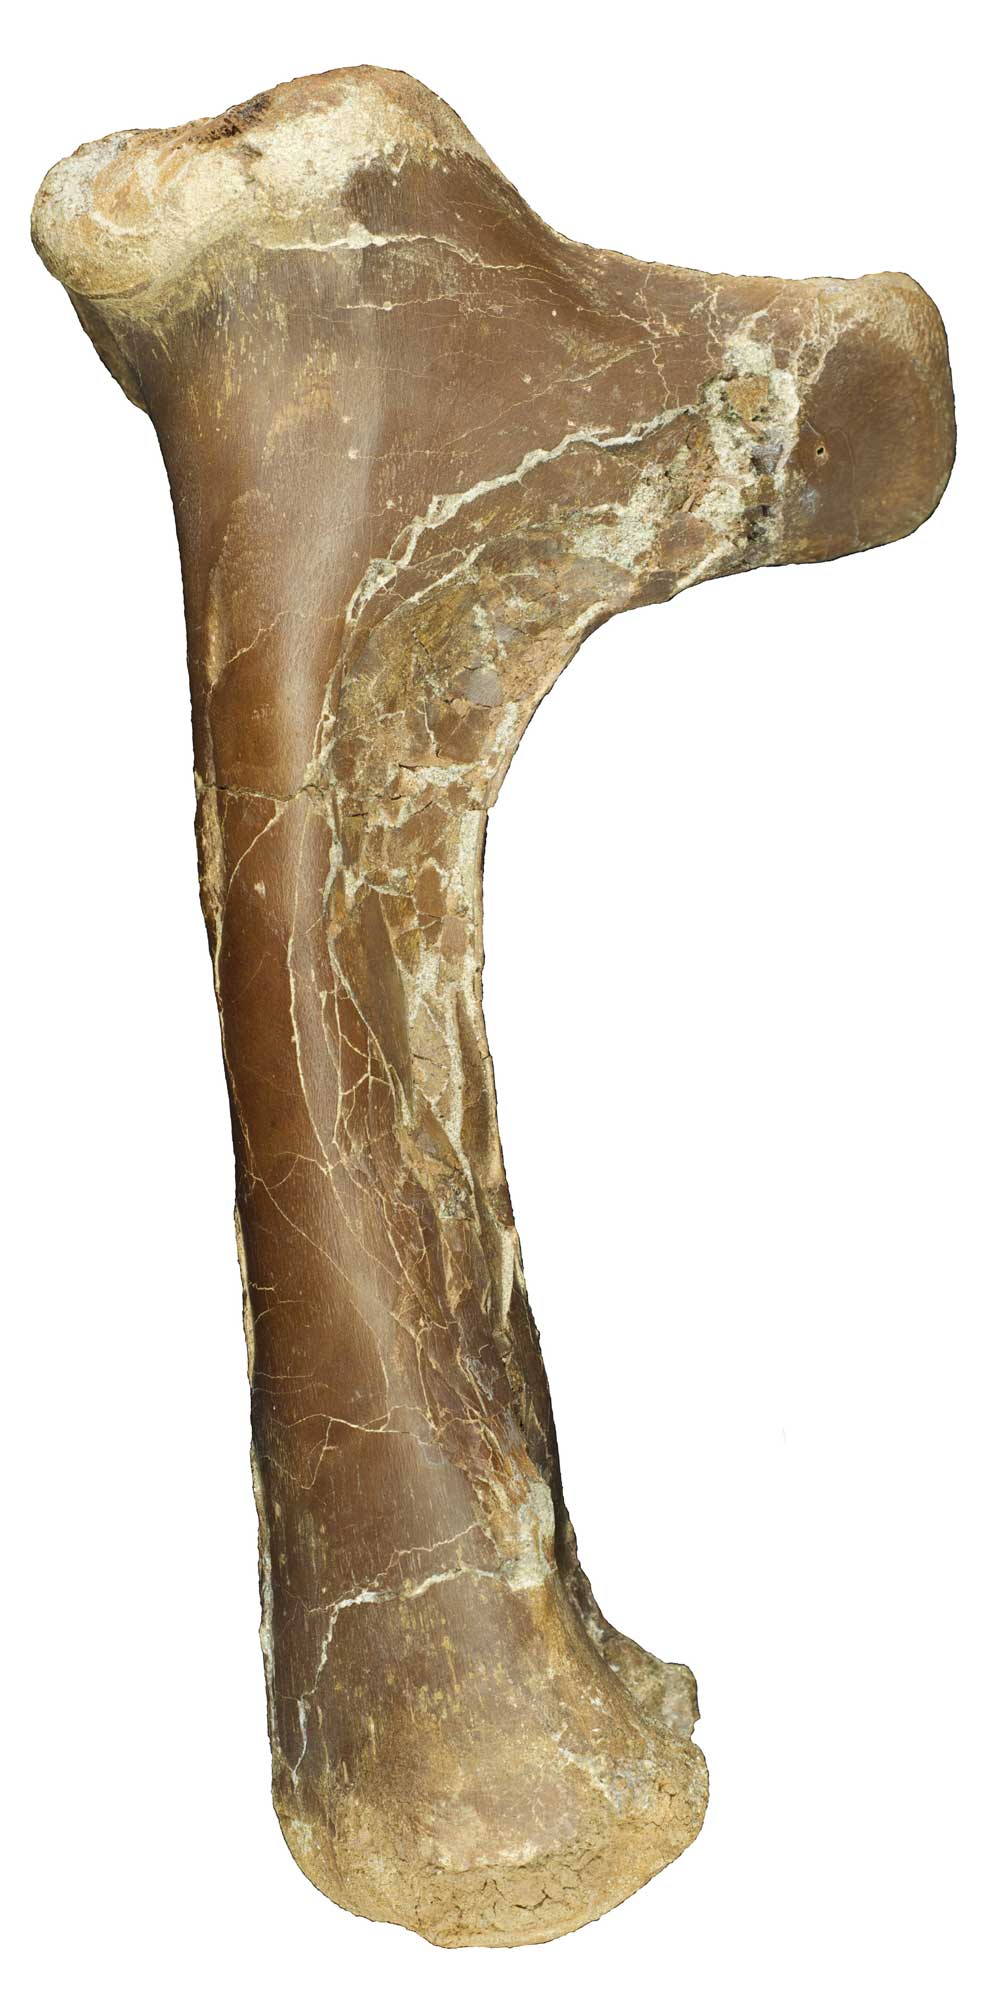 Right humerus of Cryodrakon boreas (upper arm bone seen from the side and slightly behind, about 25 cm long).